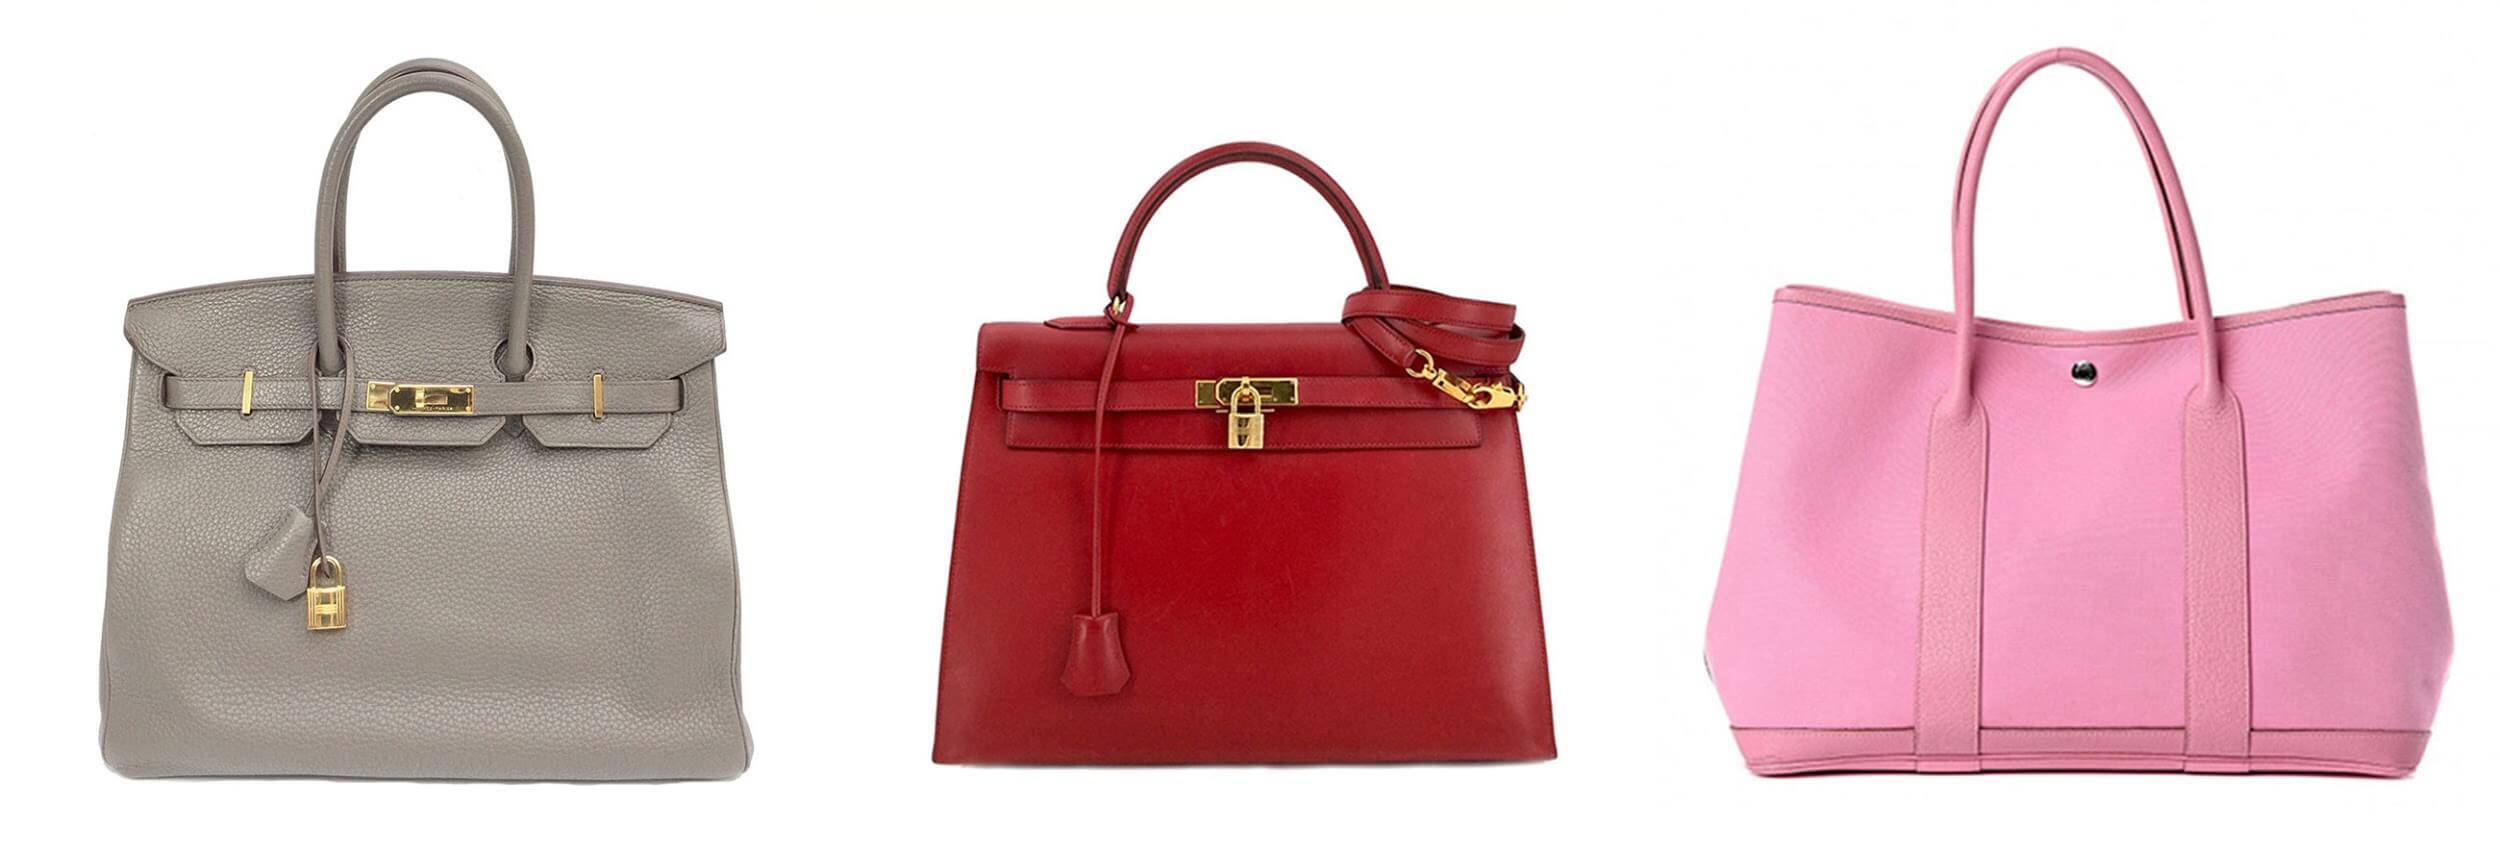 Birkin Kelly and Garden Party Tote Bags